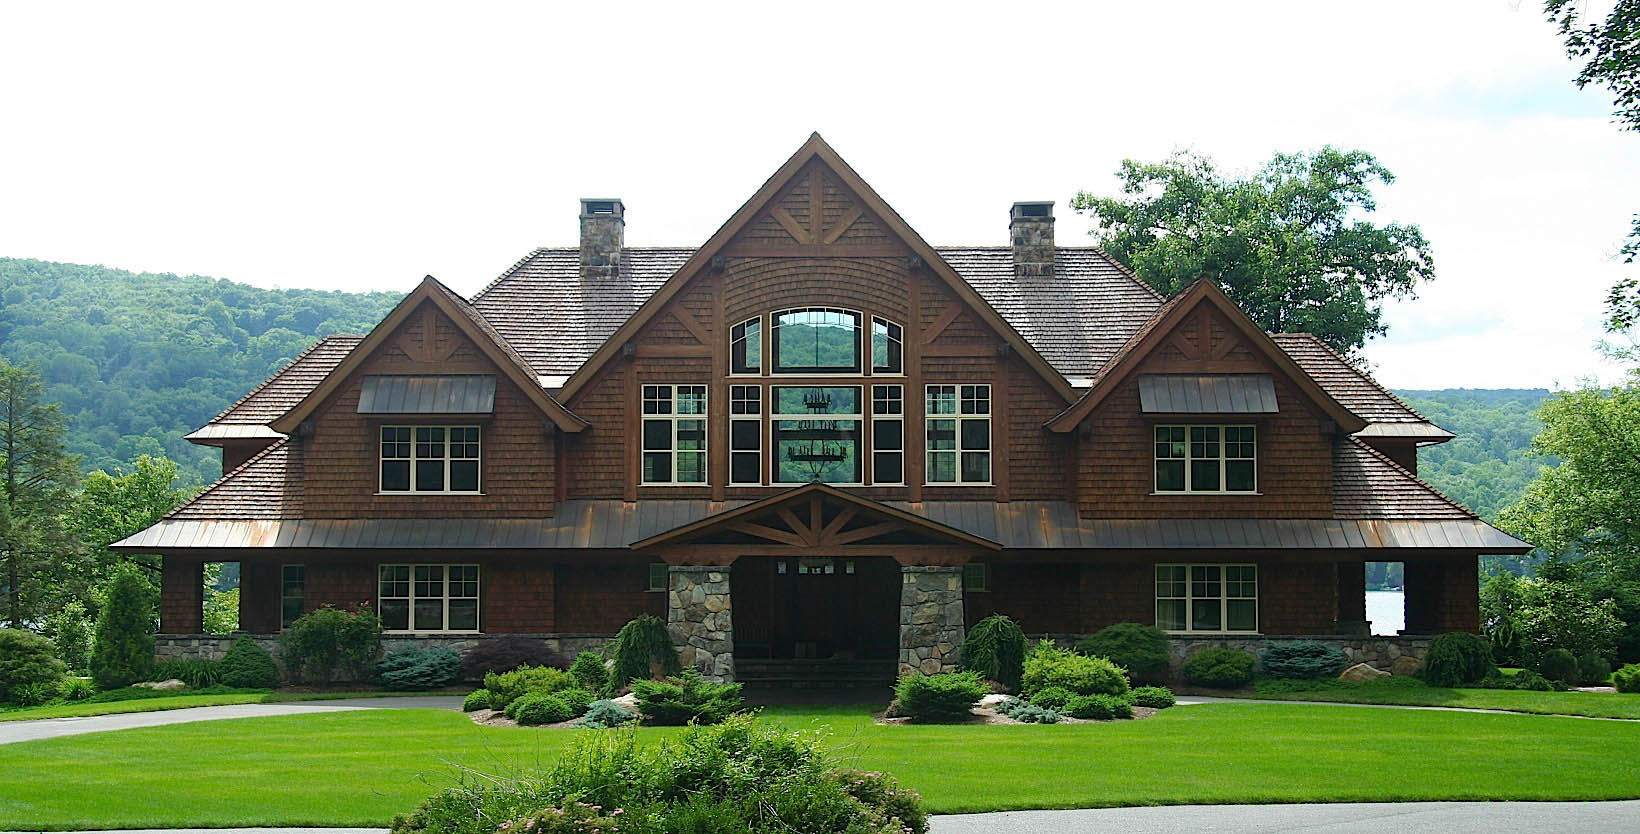 Sherman Lake House Exterior Buildings Houses Such